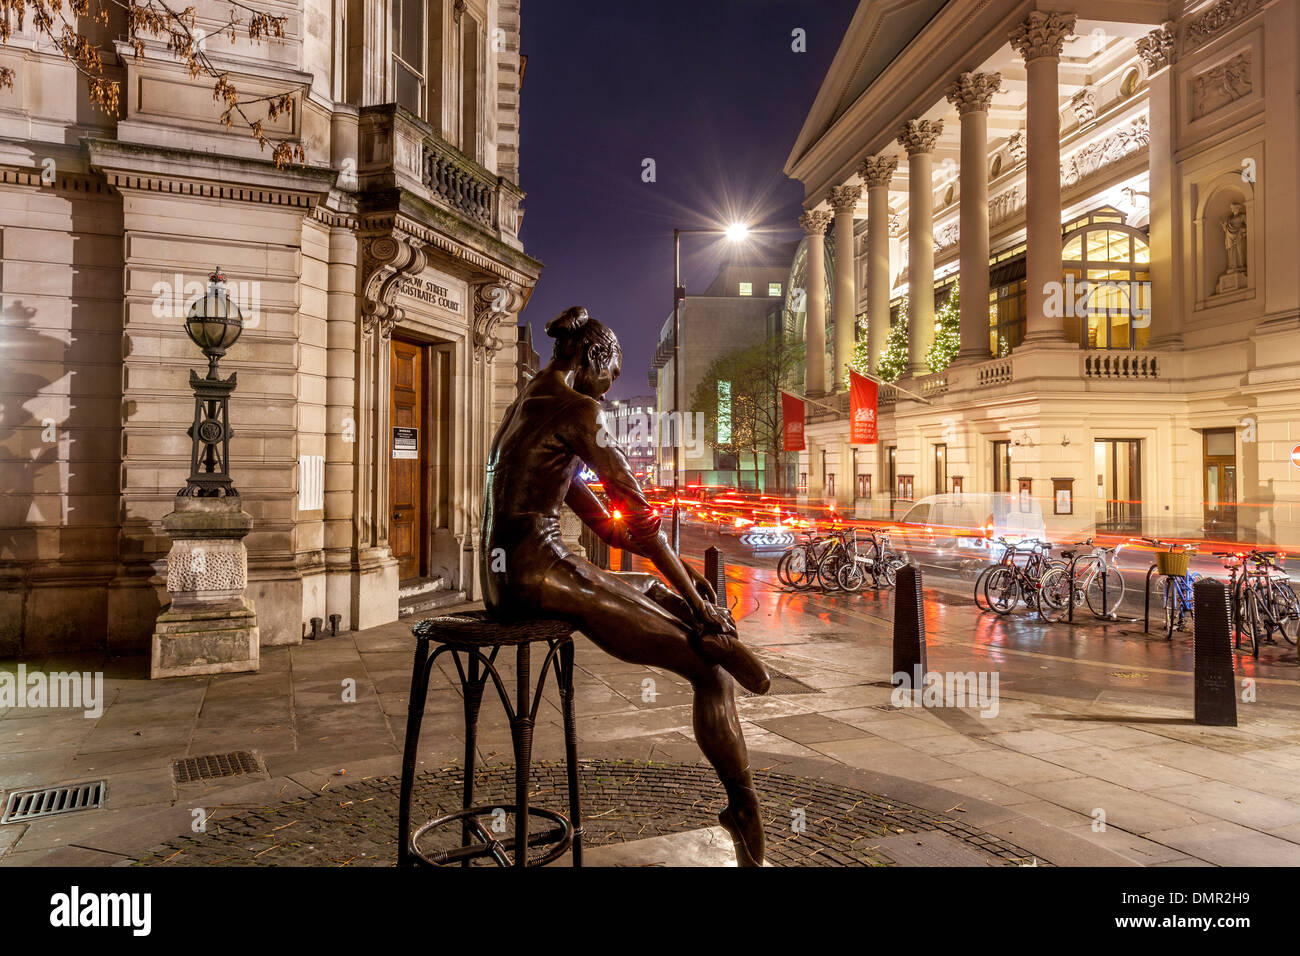 Surprising The Royal Opera House  Young Dancer Statue Covent Garden London  With Fetching The Royal Opera House  Young Dancer Statue Covent Garden London England With Astounding L Shaped Garden Design Ideas Also James Street Covent Garden In Addition Pictures Of Kew Gardens And Garden Time As Well As Plastic Border Edging For Gardens Additionally Gardening Jobs In Suffolk From Alamycom With   Fetching The Royal Opera House  Young Dancer Statue Covent Garden London  With Astounding The Royal Opera House  Young Dancer Statue Covent Garden London England And Surprising L Shaped Garden Design Ideas Also James Street Covent Garden In Addition Pictures Of Kew Gardens From Alamycom